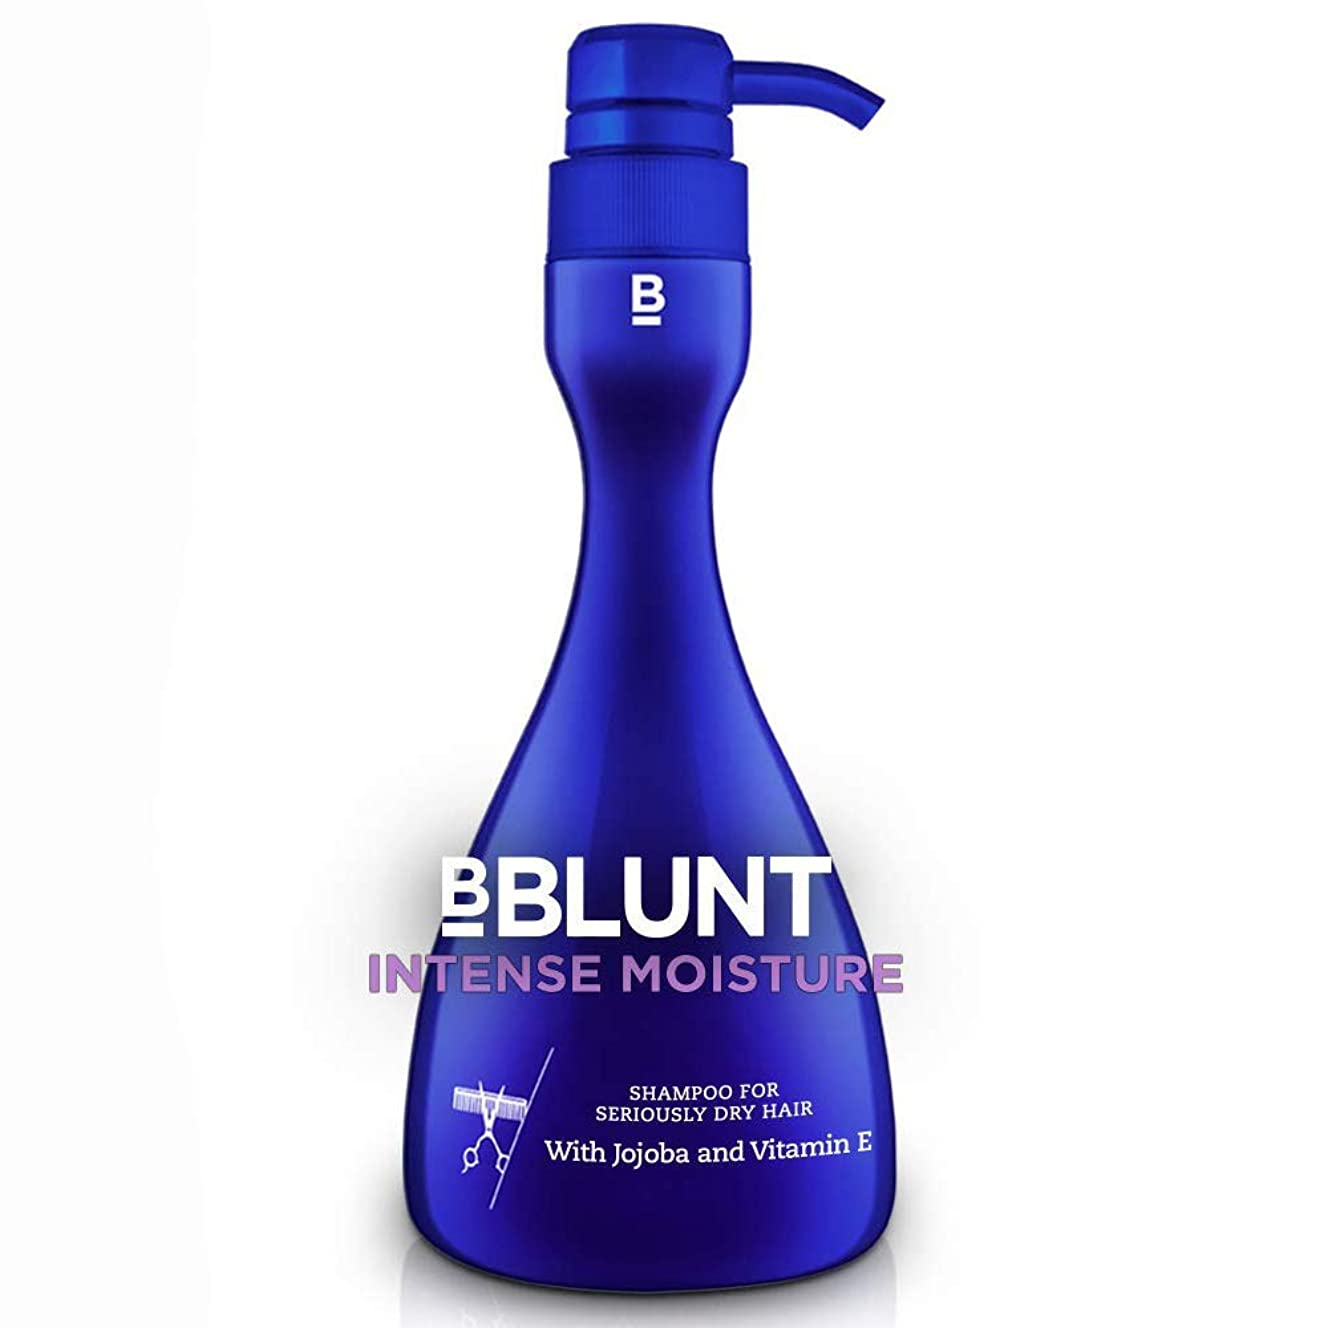 統治可能メロン立ち寄るBBLUNT Intense Moisture Shampoo for Seriously Dry Hair, 400ml (With Jojoba & Vitamin E)